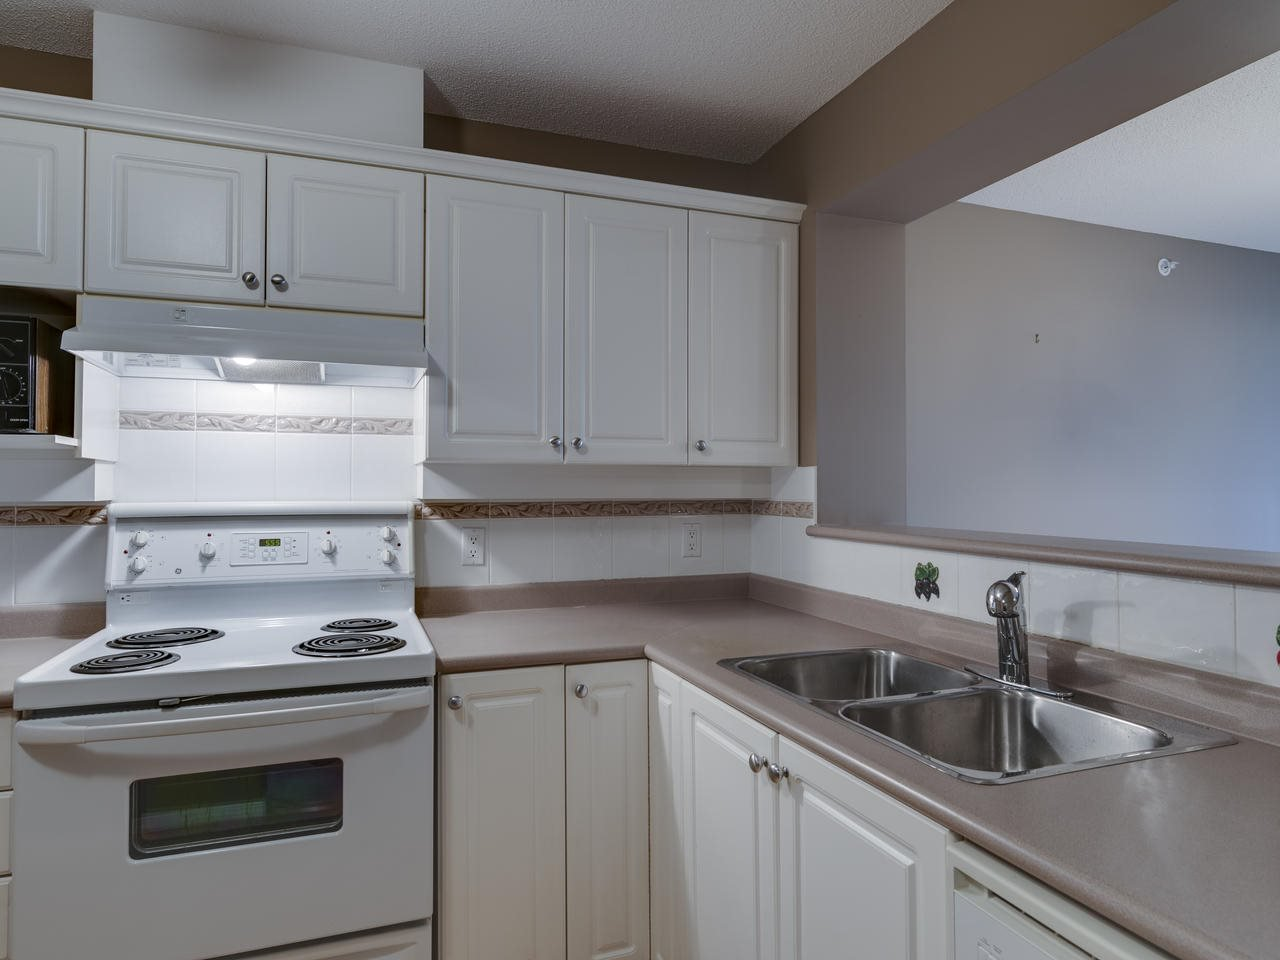 """Photo 6: Photos: 404 12148 224 Street in Maple Ridge: East Central Condo for sale in """"Panorama"""" : MLS®# R2461995"""